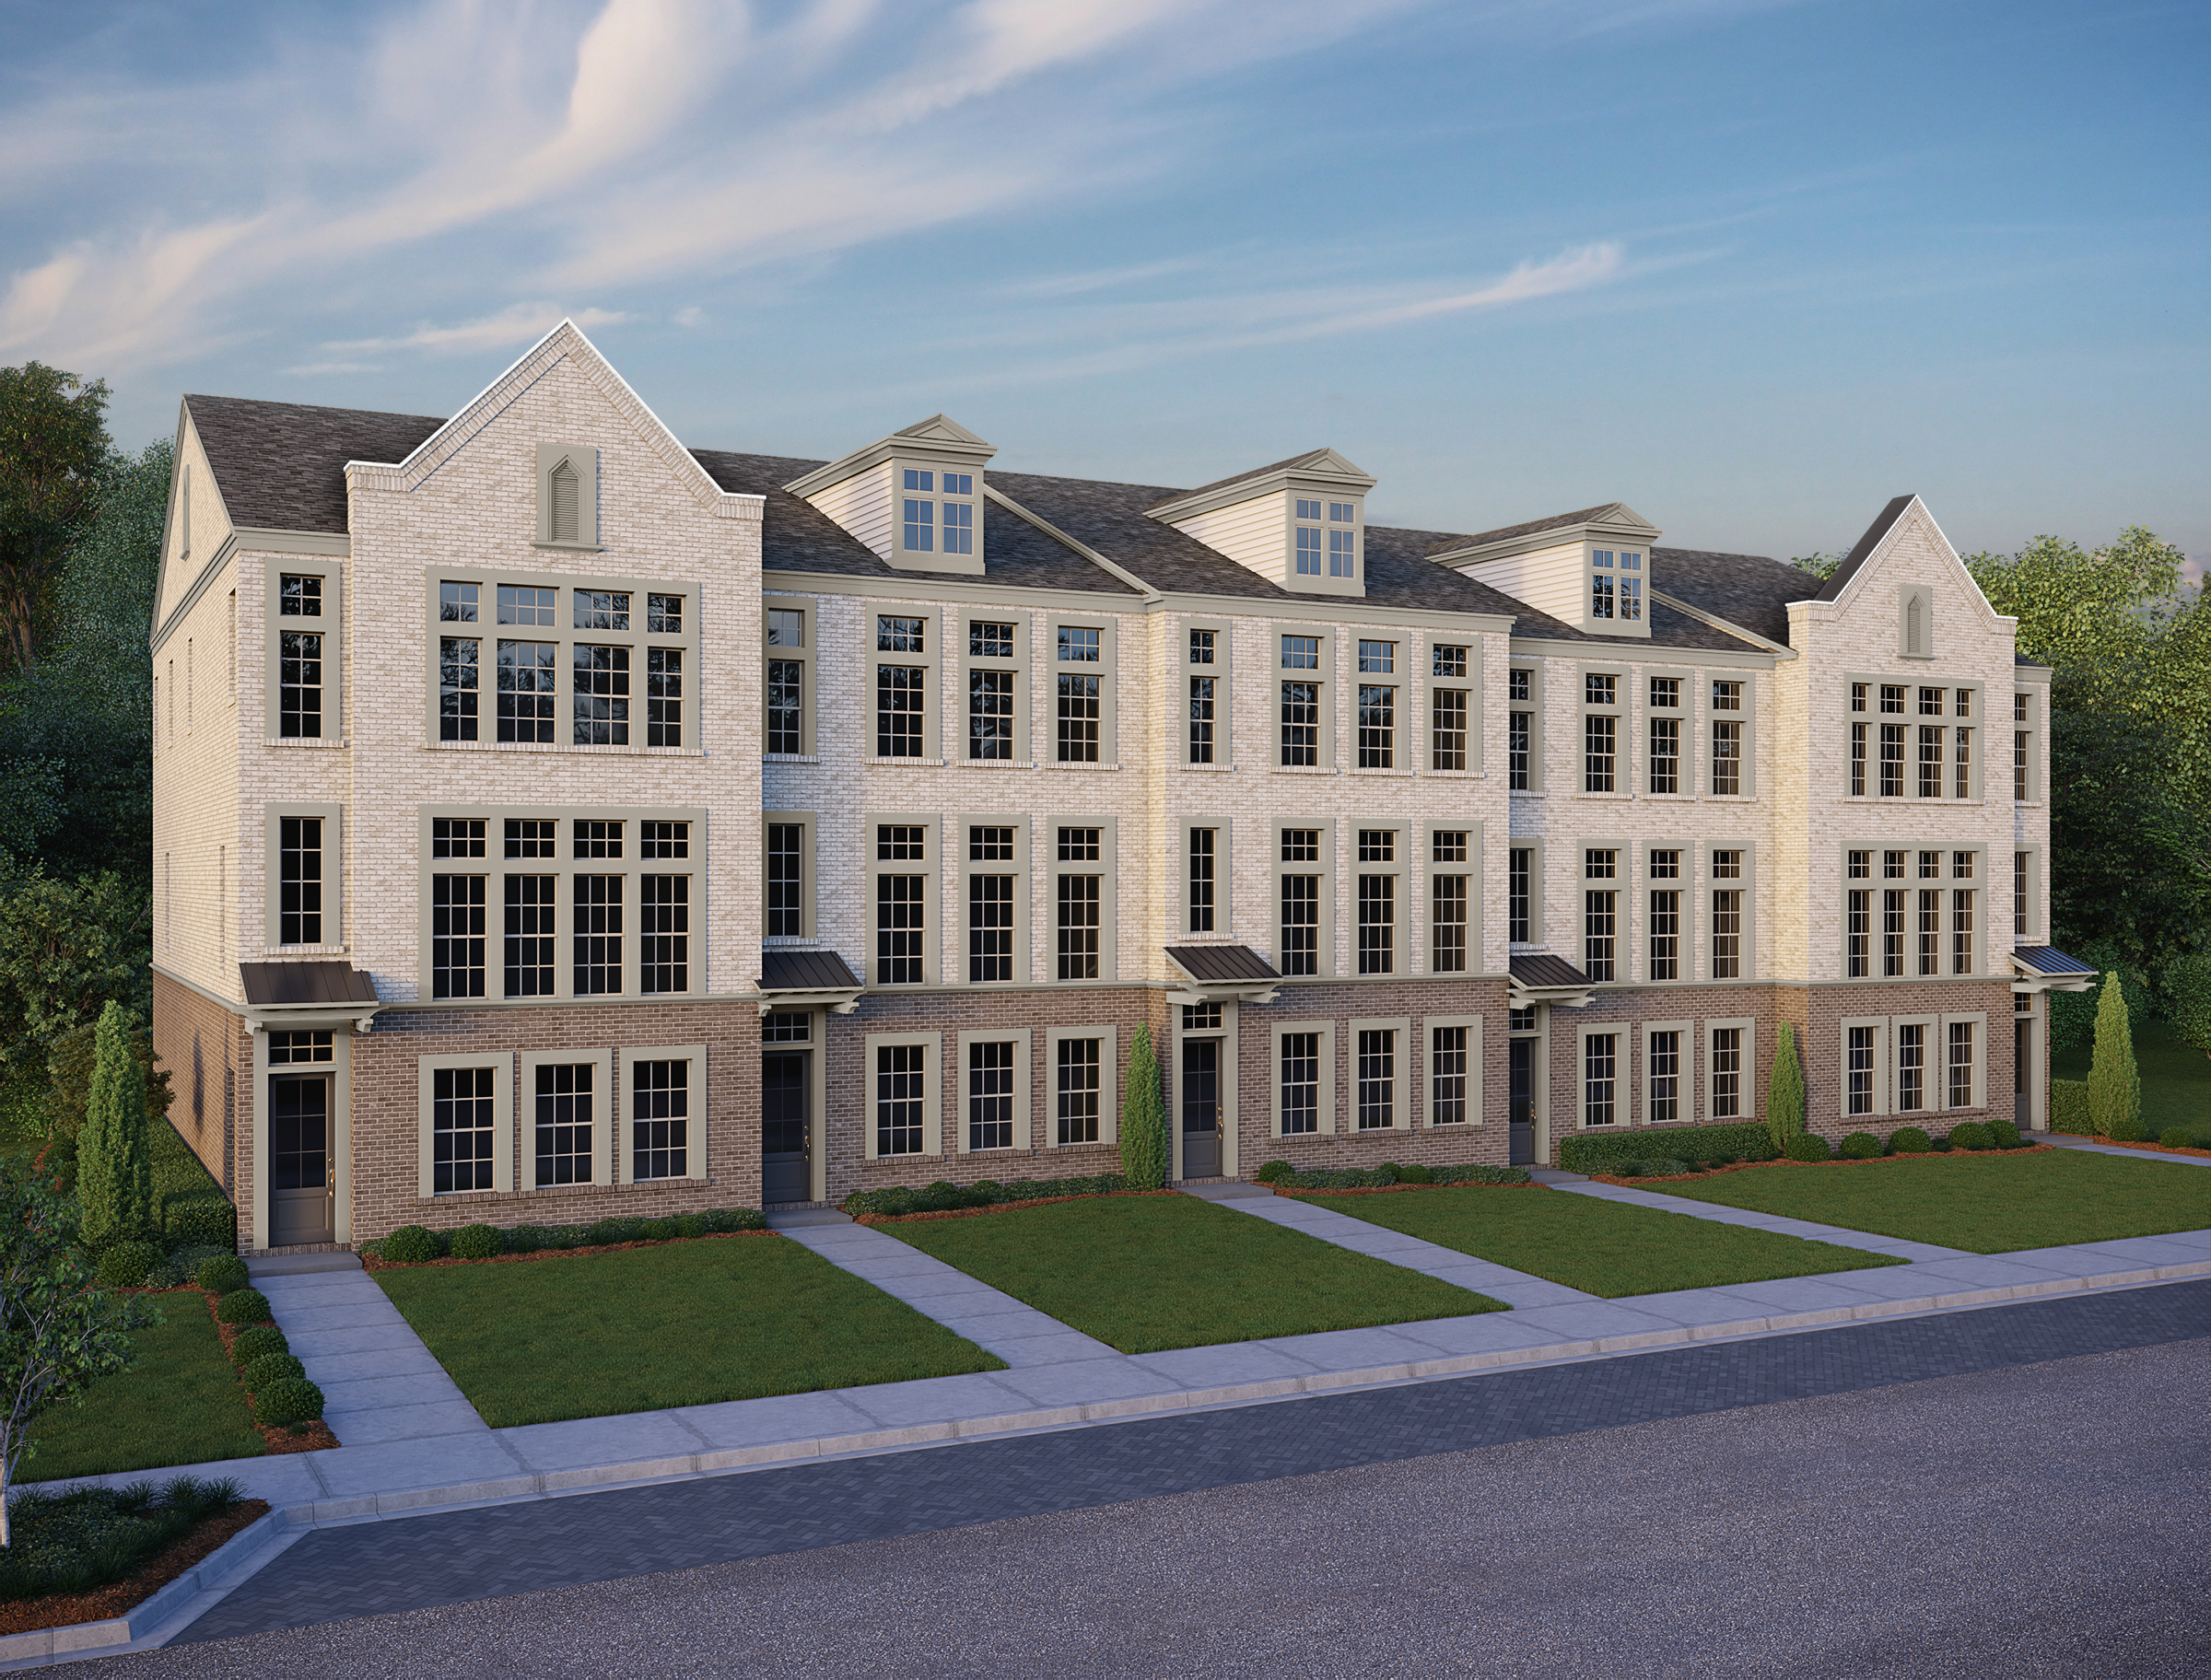 A large white brick townhome project with three stories, walkways, and a bank of green trees behind it.